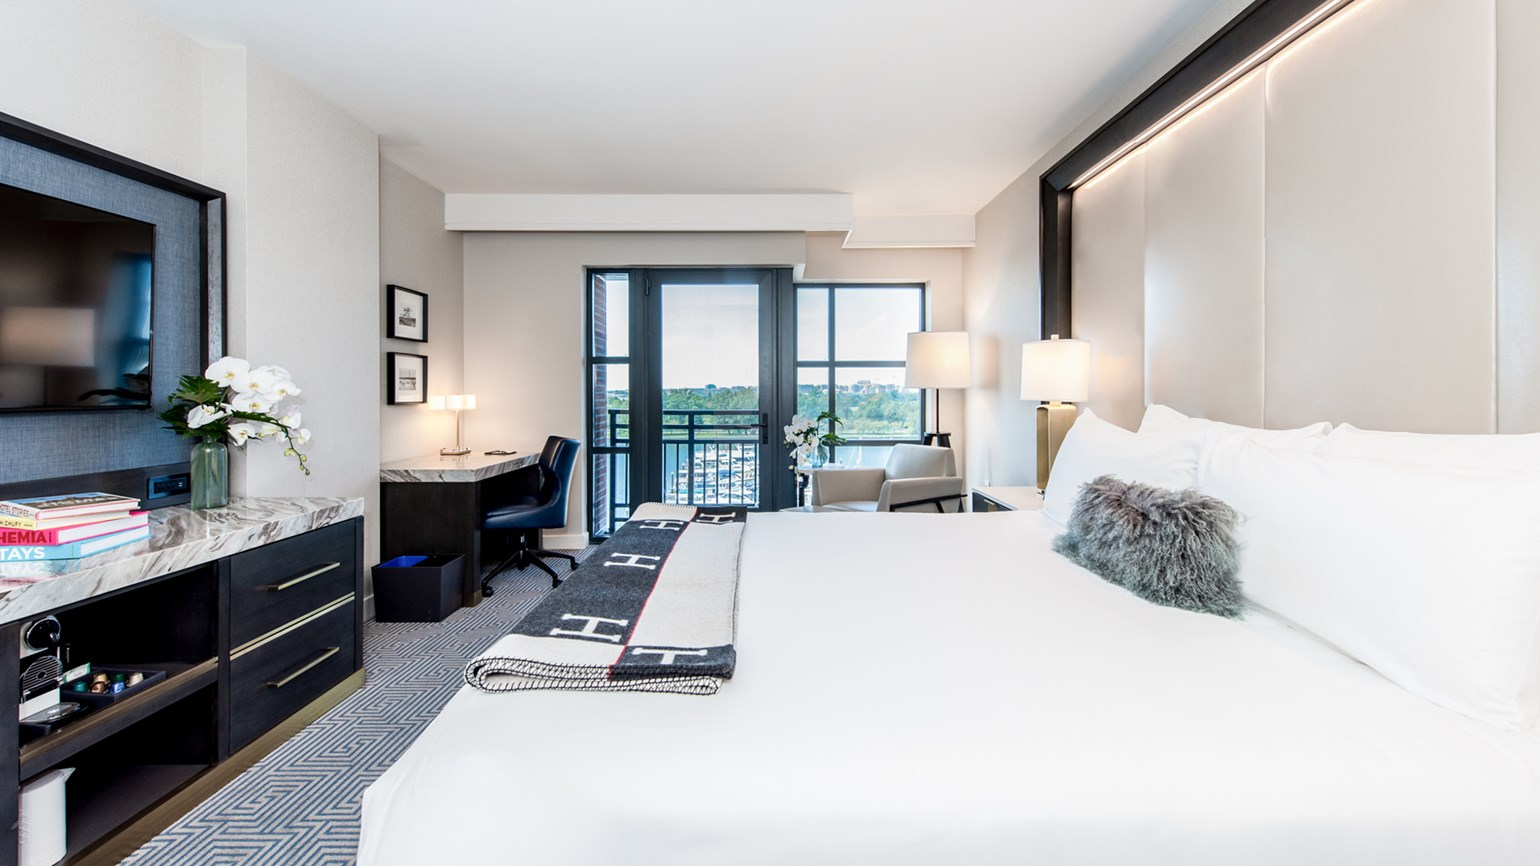 InterContinental opens in D.C.'s Wharf development